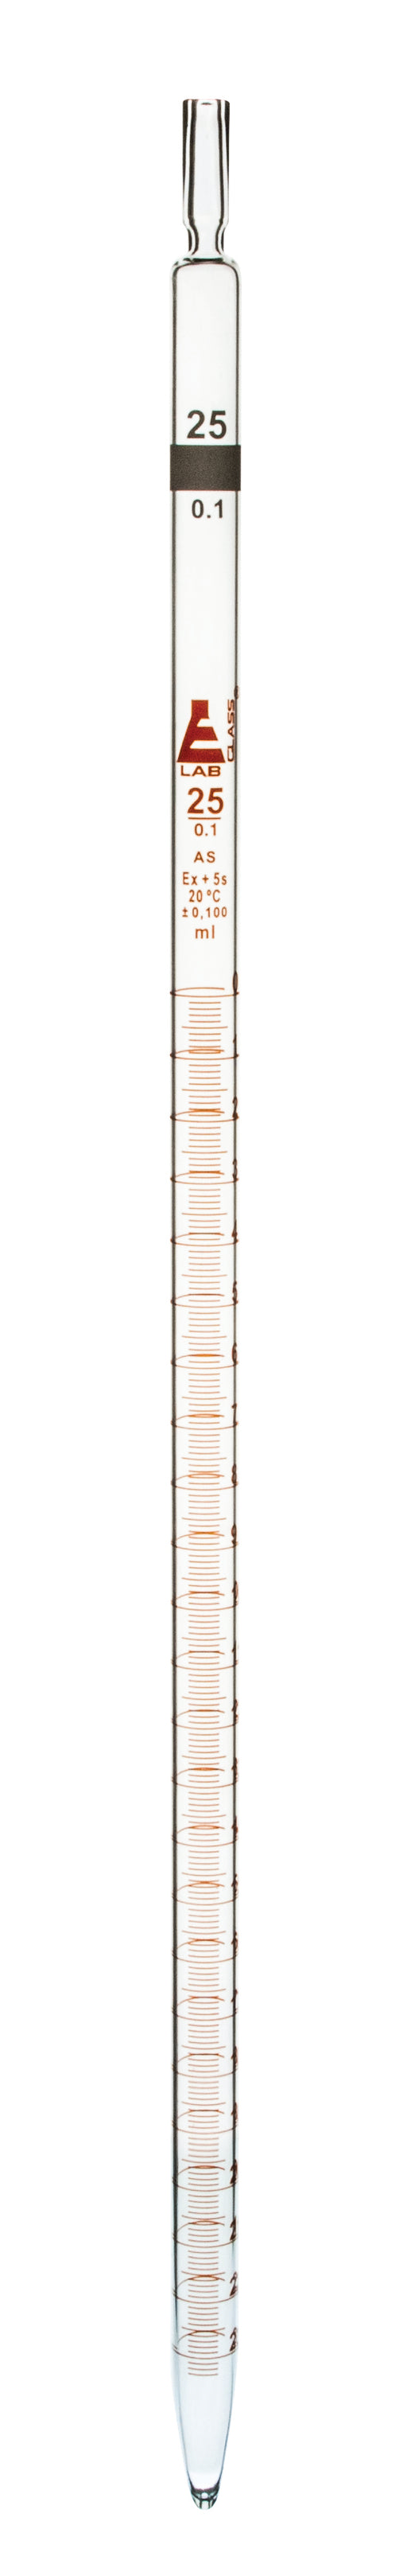 Pipette, 25ml - Class AS, Tolerance ±0.100 - Amber Graduation - Color Code, White - Borosilicate Glass - Eisco Labs